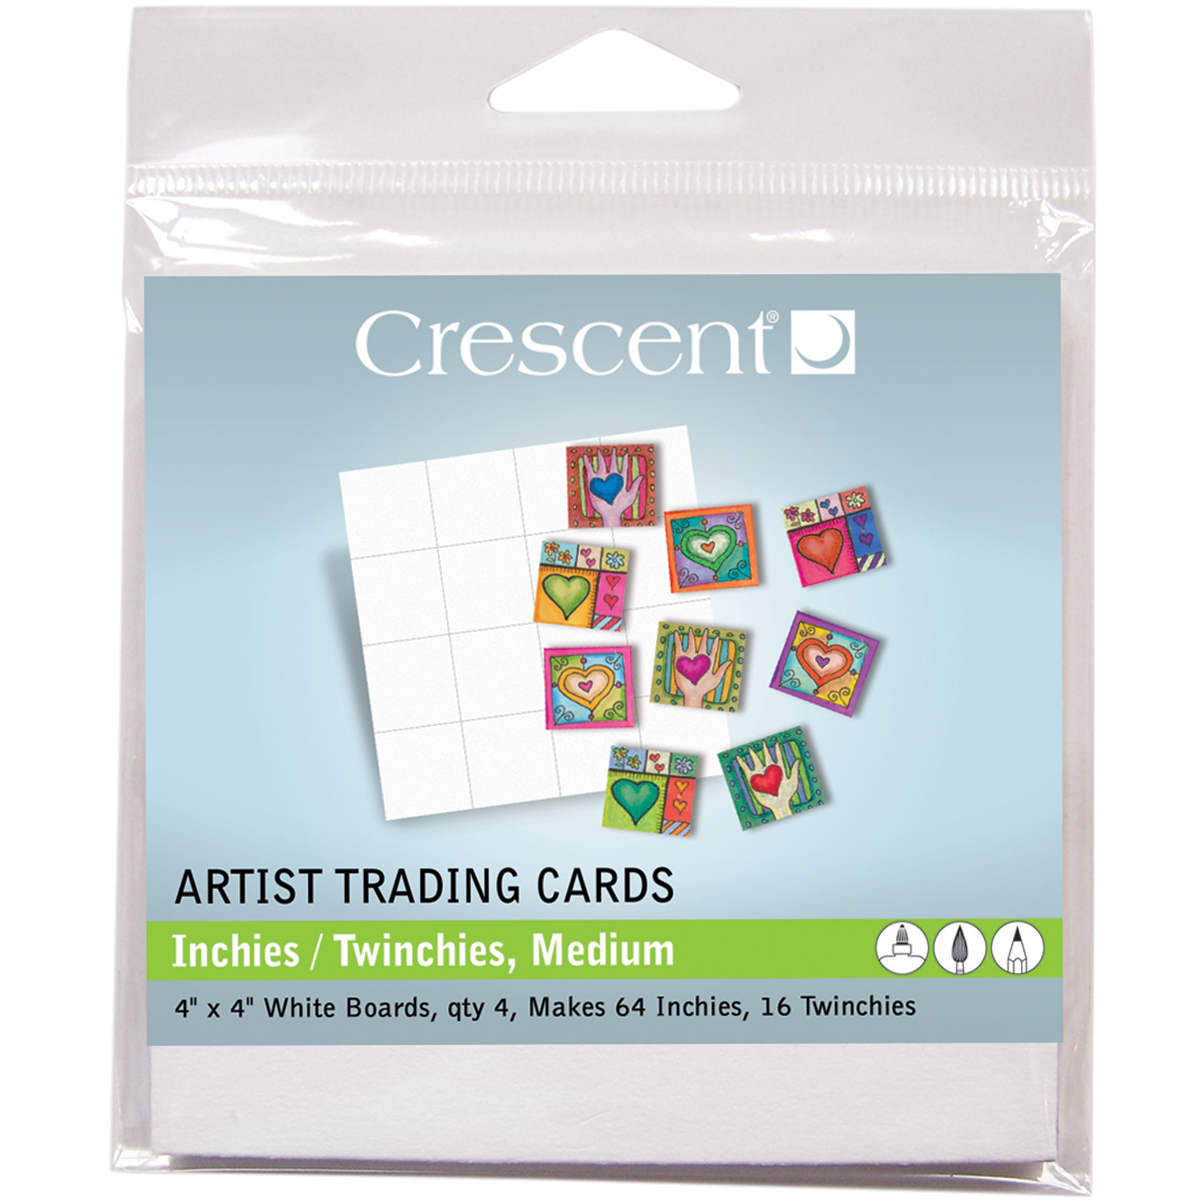 "Crescent Artist Trading Cards 4""X4"" 4/Pkg-Inchies/Twinchies"